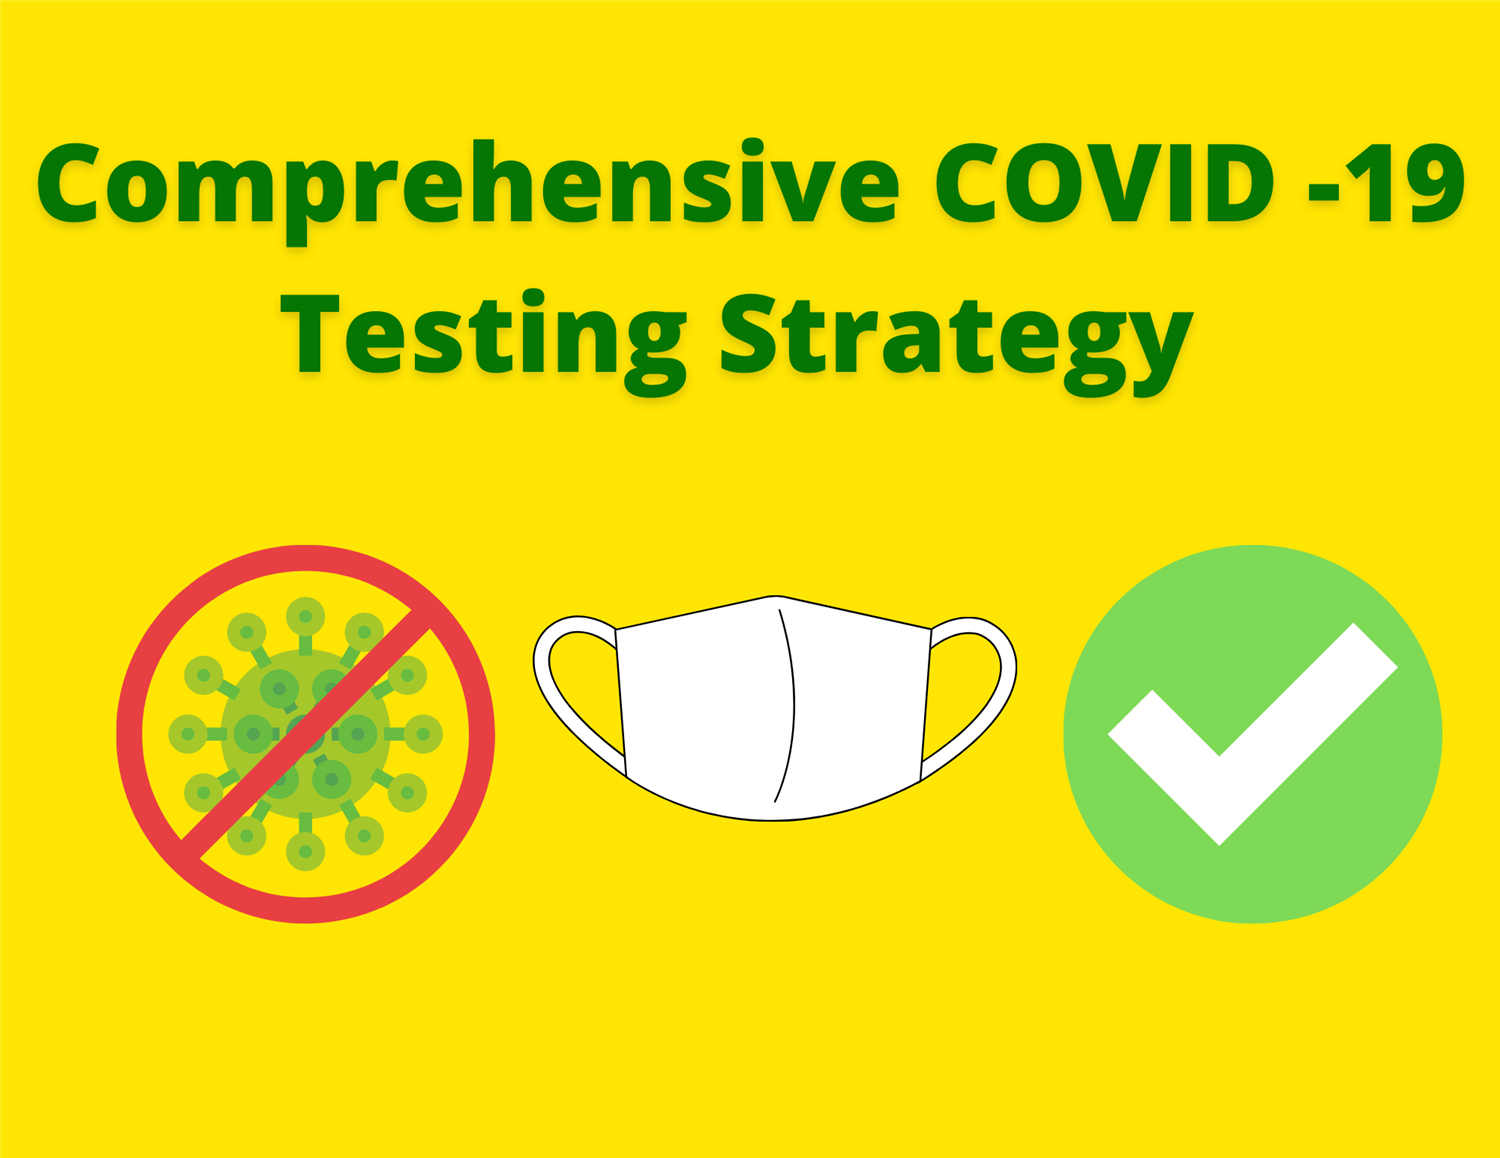 Comprehensive COVID-19 Testing Strategy IMag